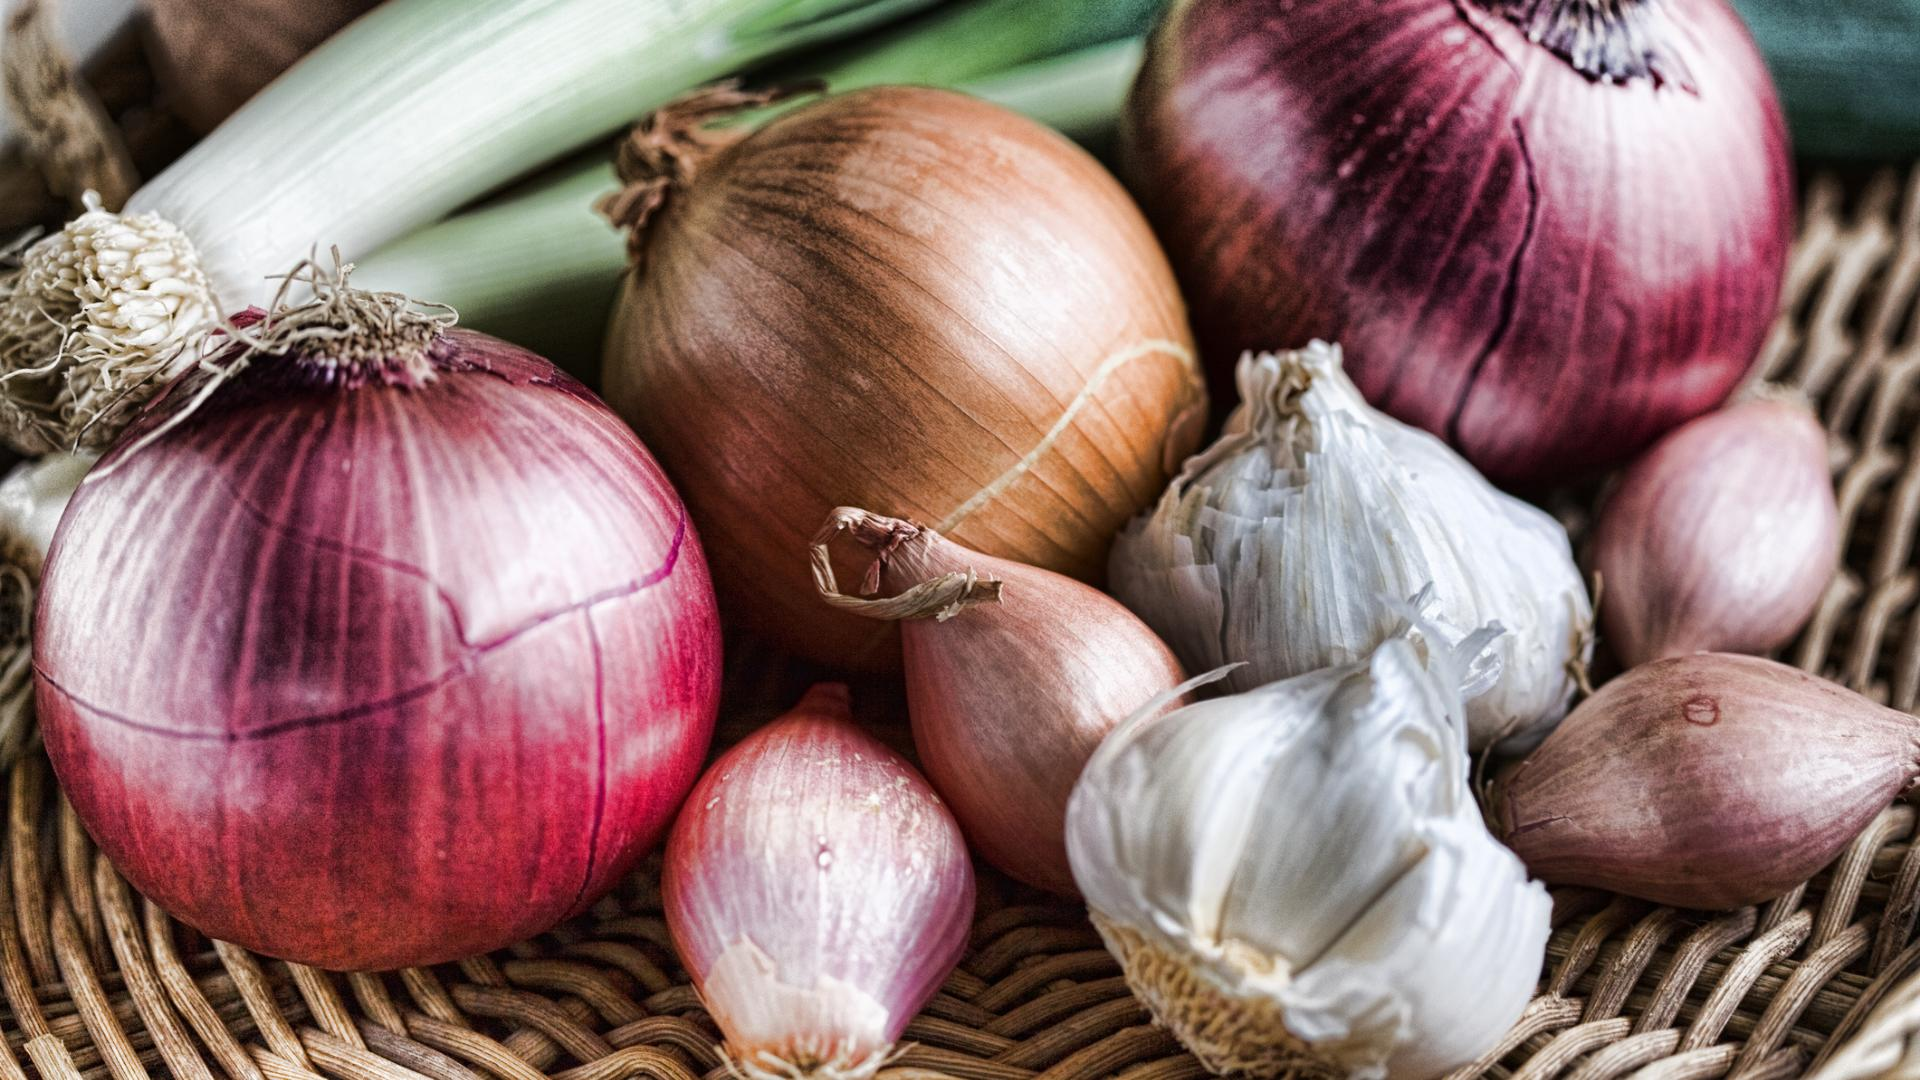 Prebiotic foods such as onions and garlic